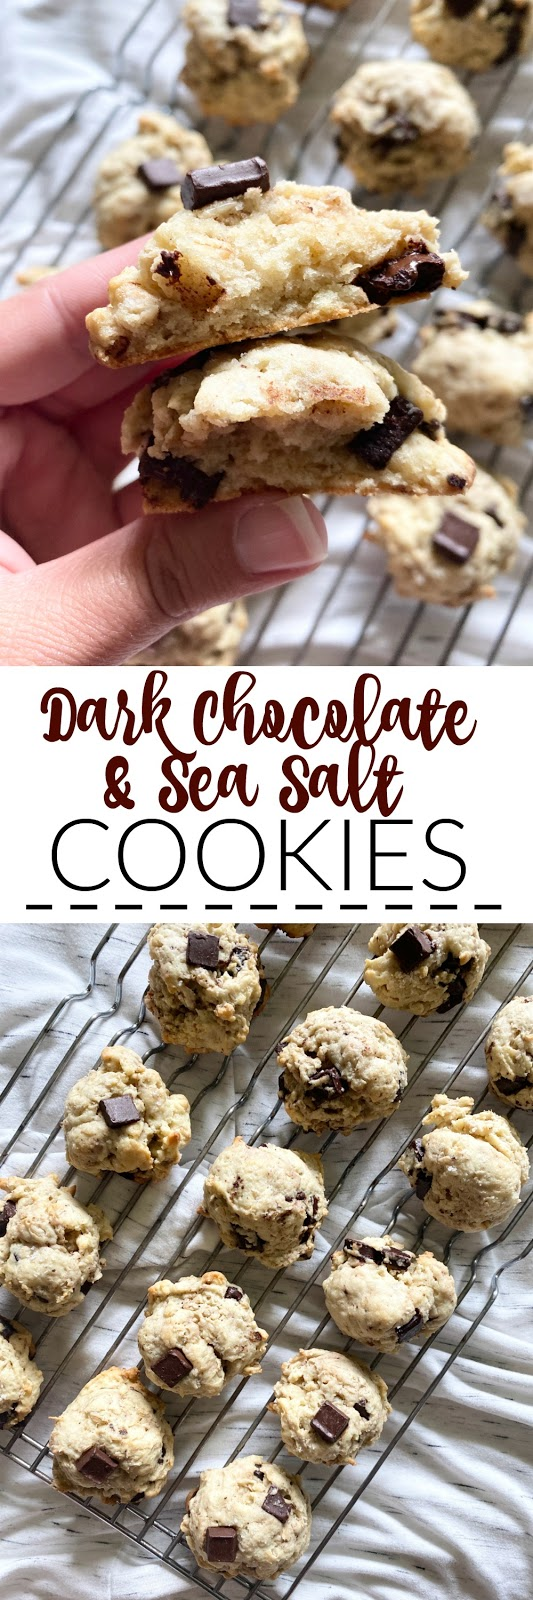 dark chocolate sea salt cookies #sweetsavoryeats #cookies